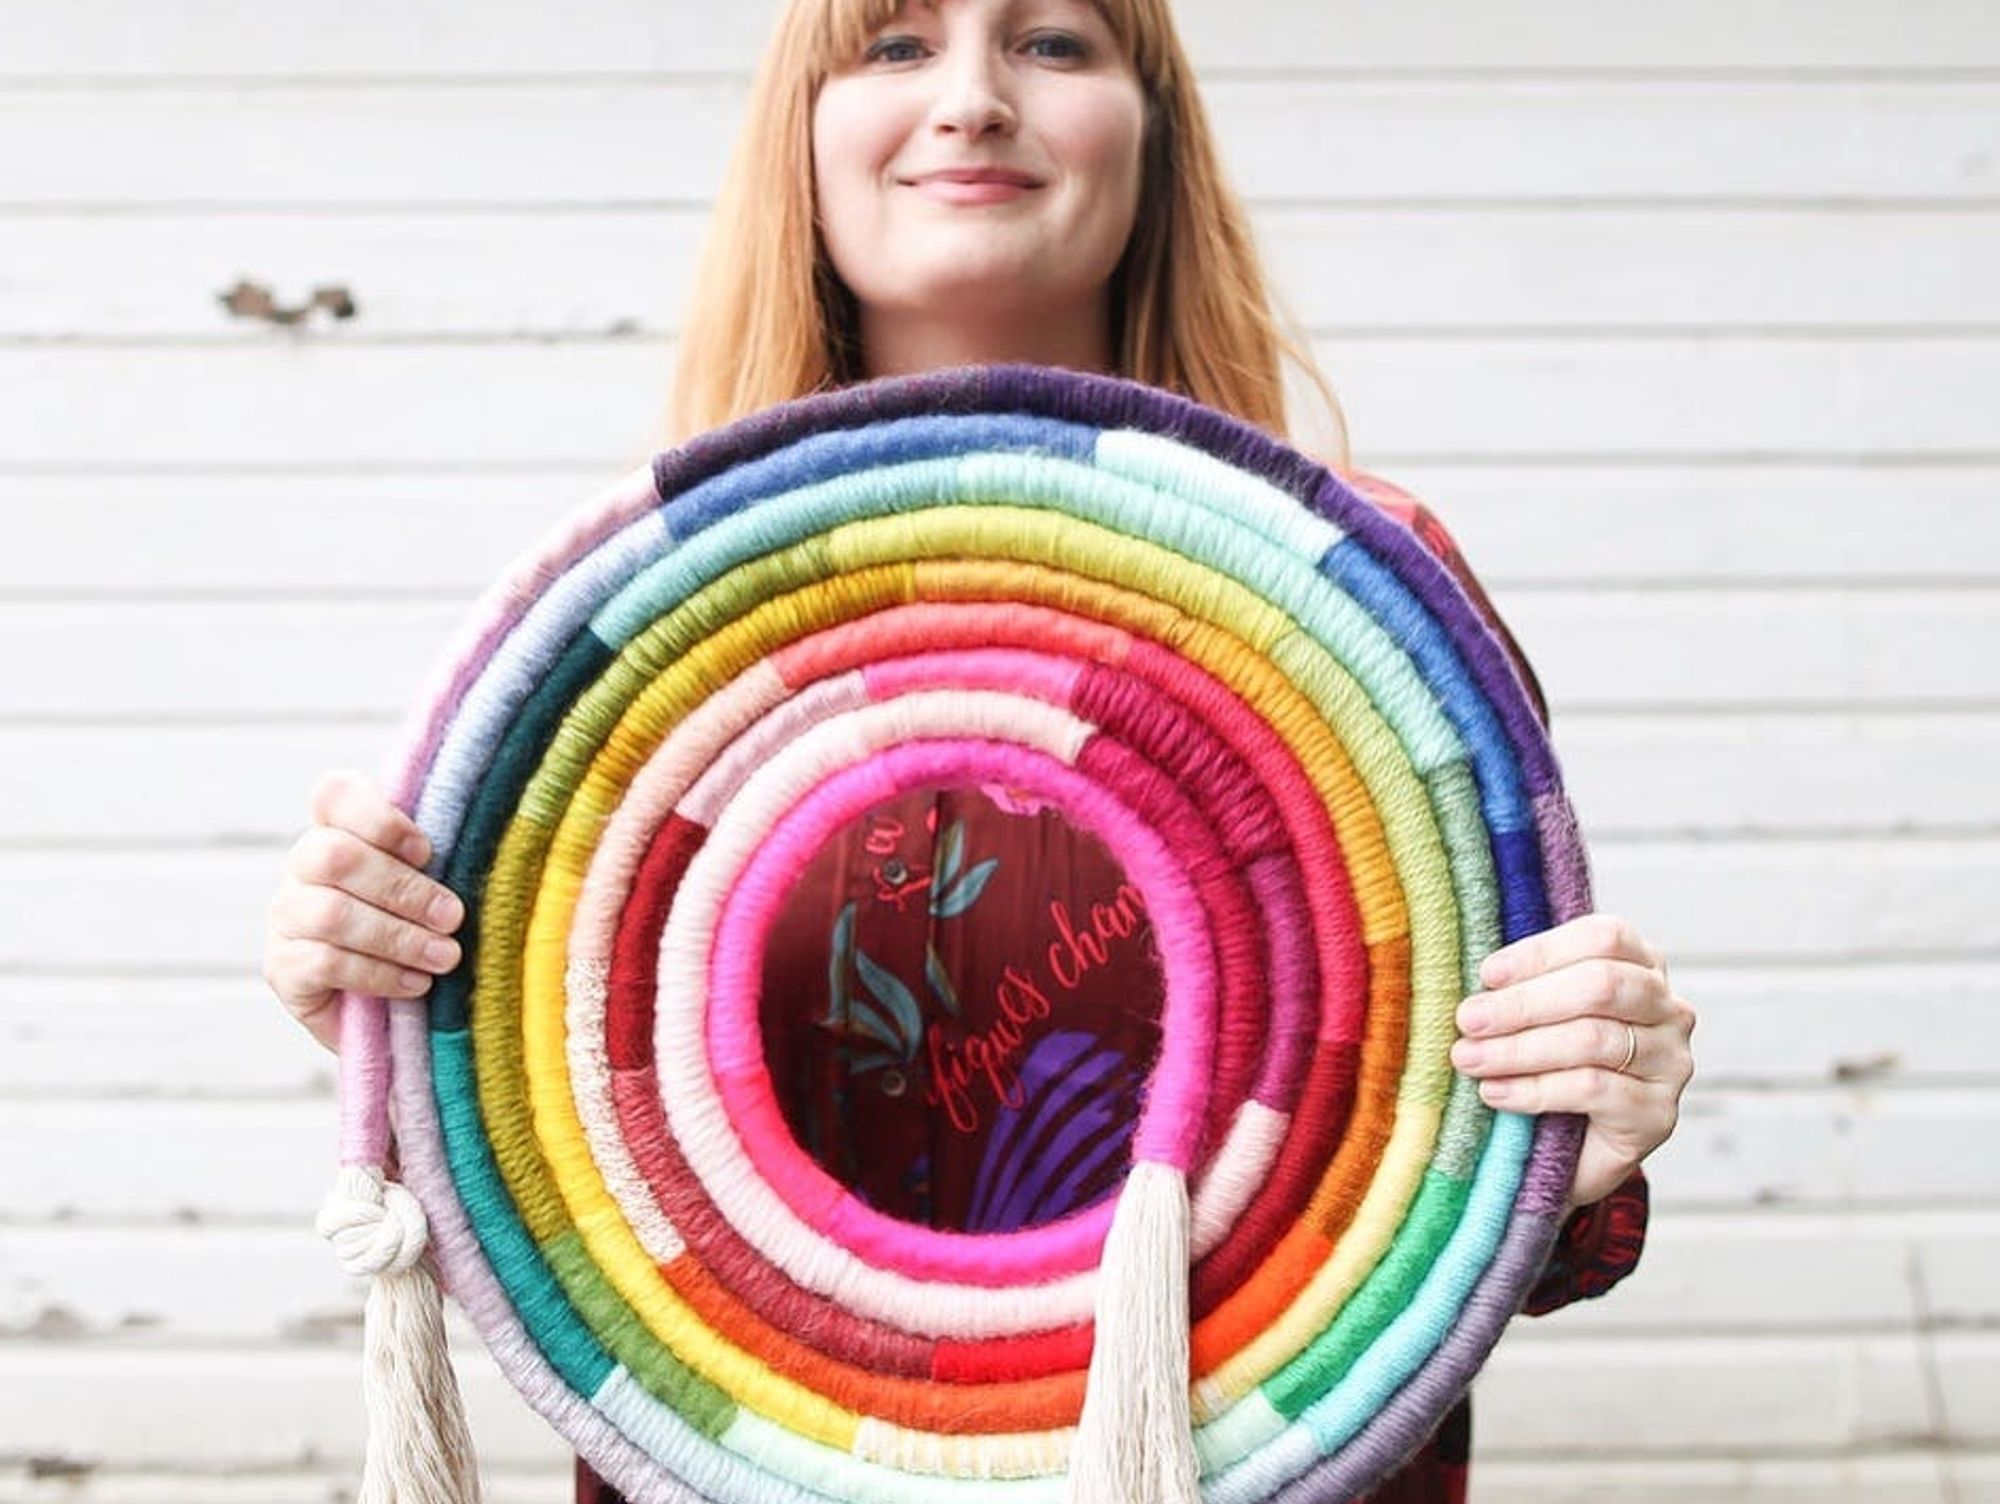 Creative Crushin': Meet the Maker Behind The Insta-Famous Fiber Rainbow Wall Hangings You've Been Swooning Over